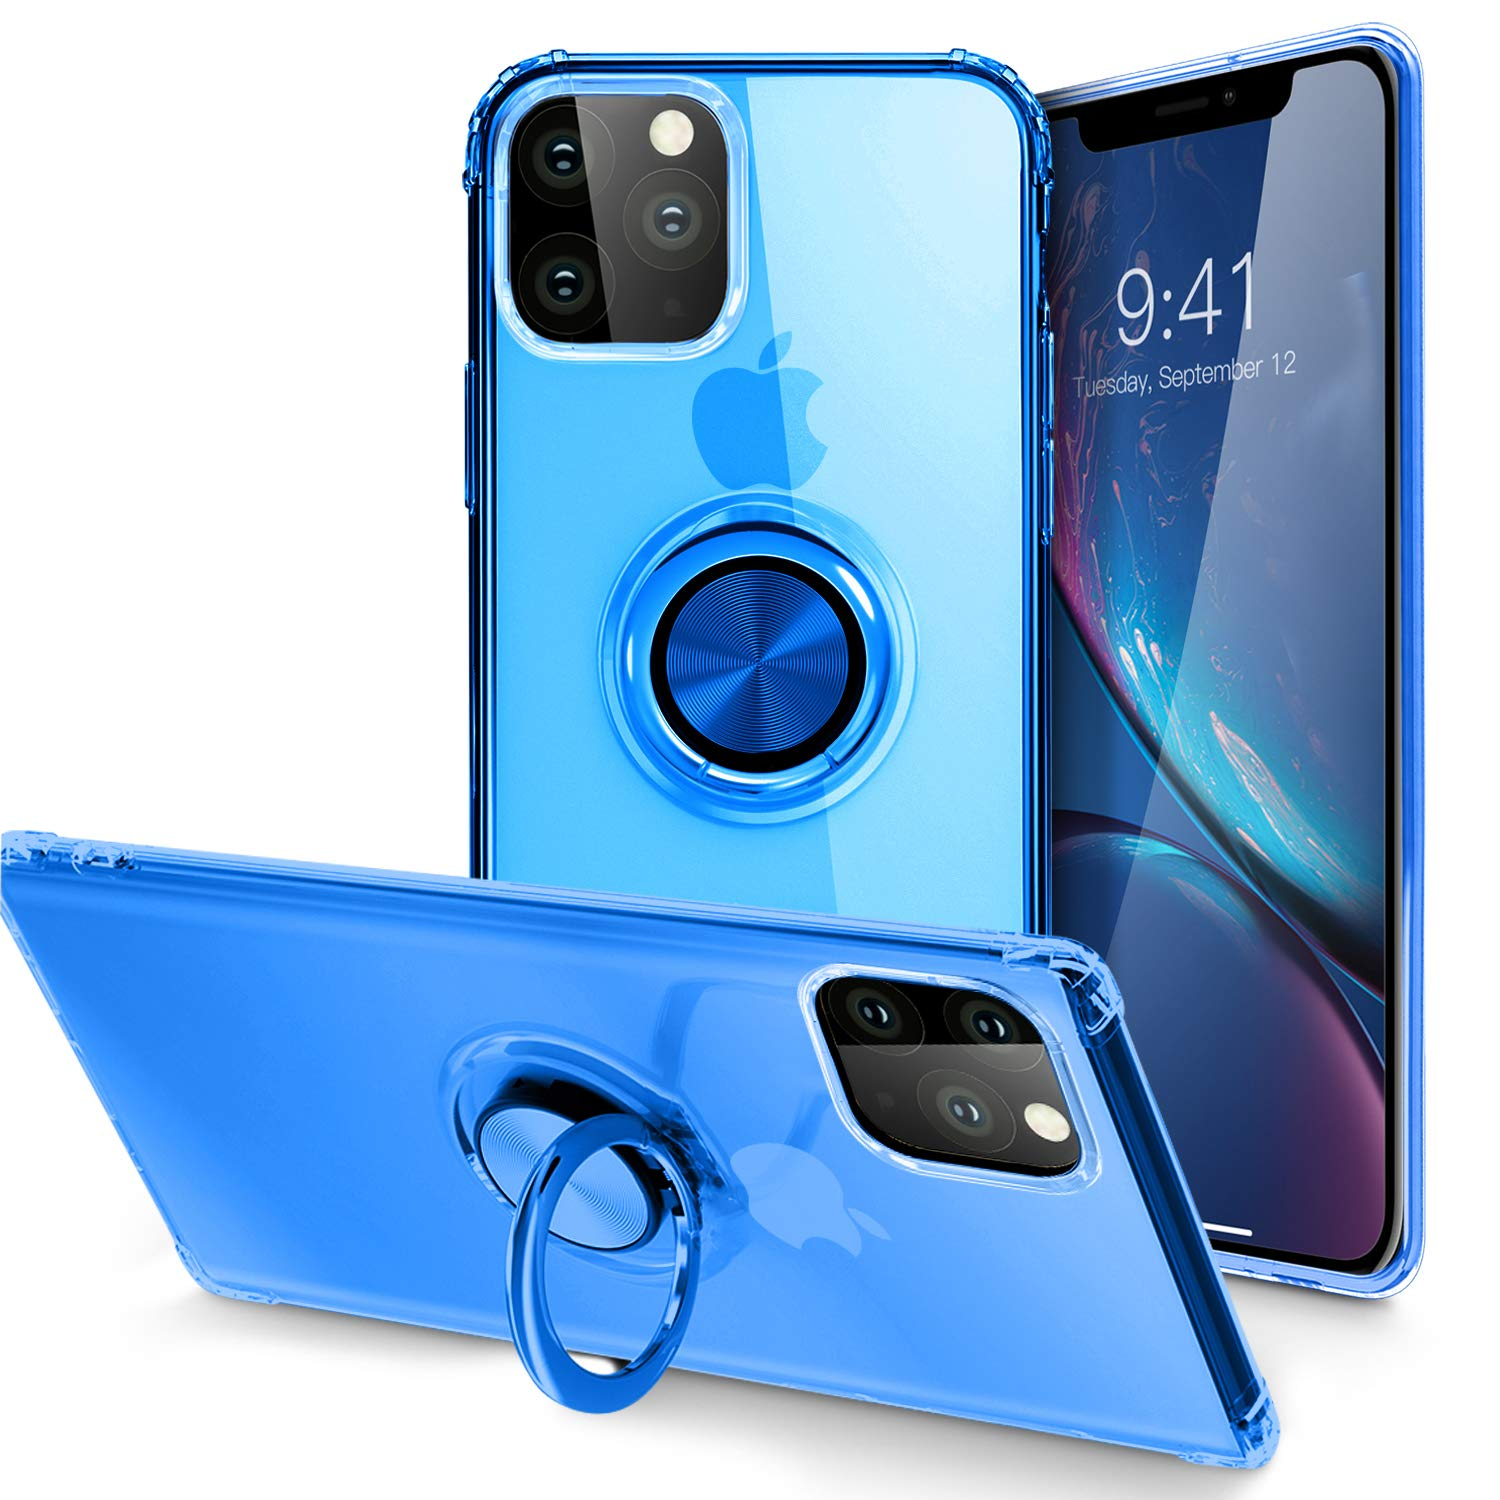 SQMCase keyring case for iPhone 11 in blue